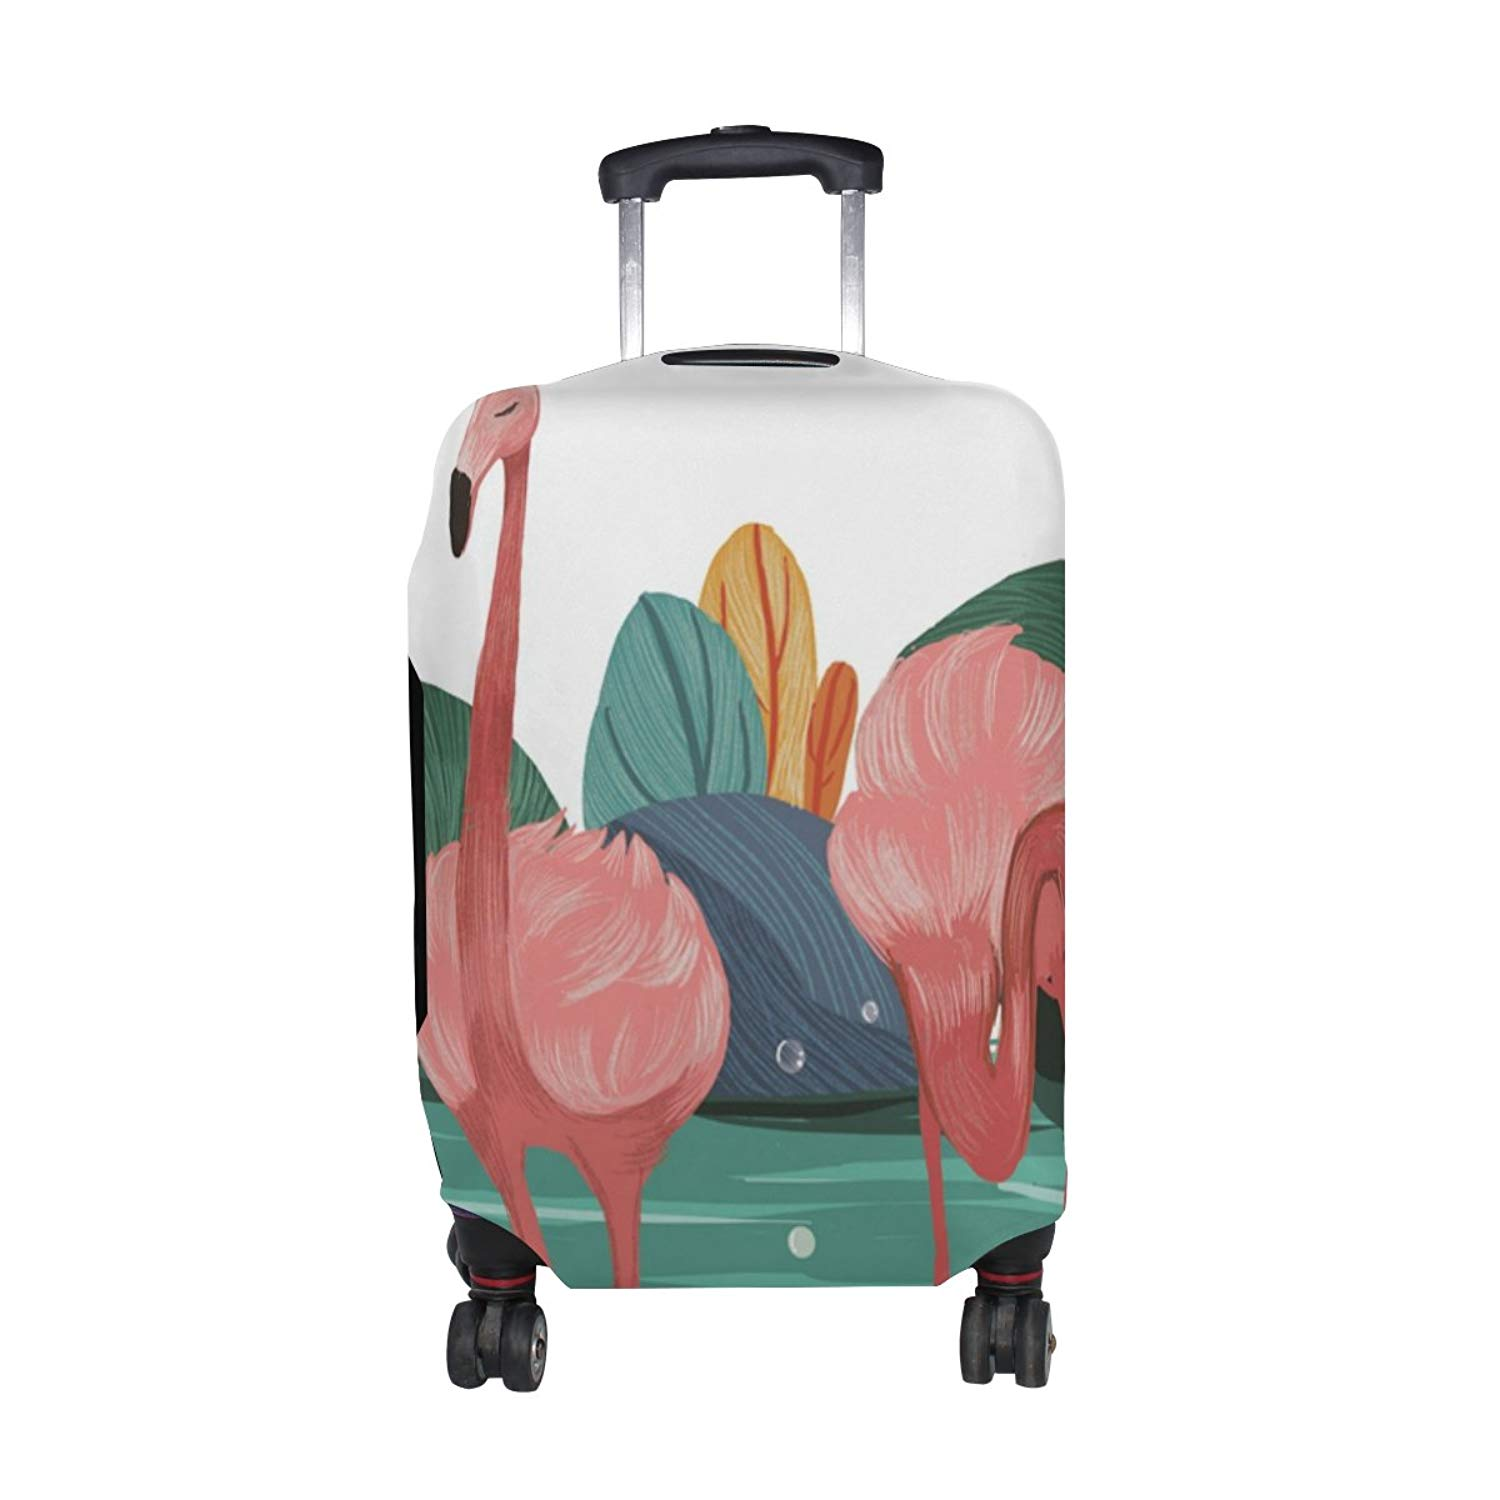 222a9b67d75b Cheap 35 Inch Suitcase, find 35 Inch Suitcase deals on line at ...